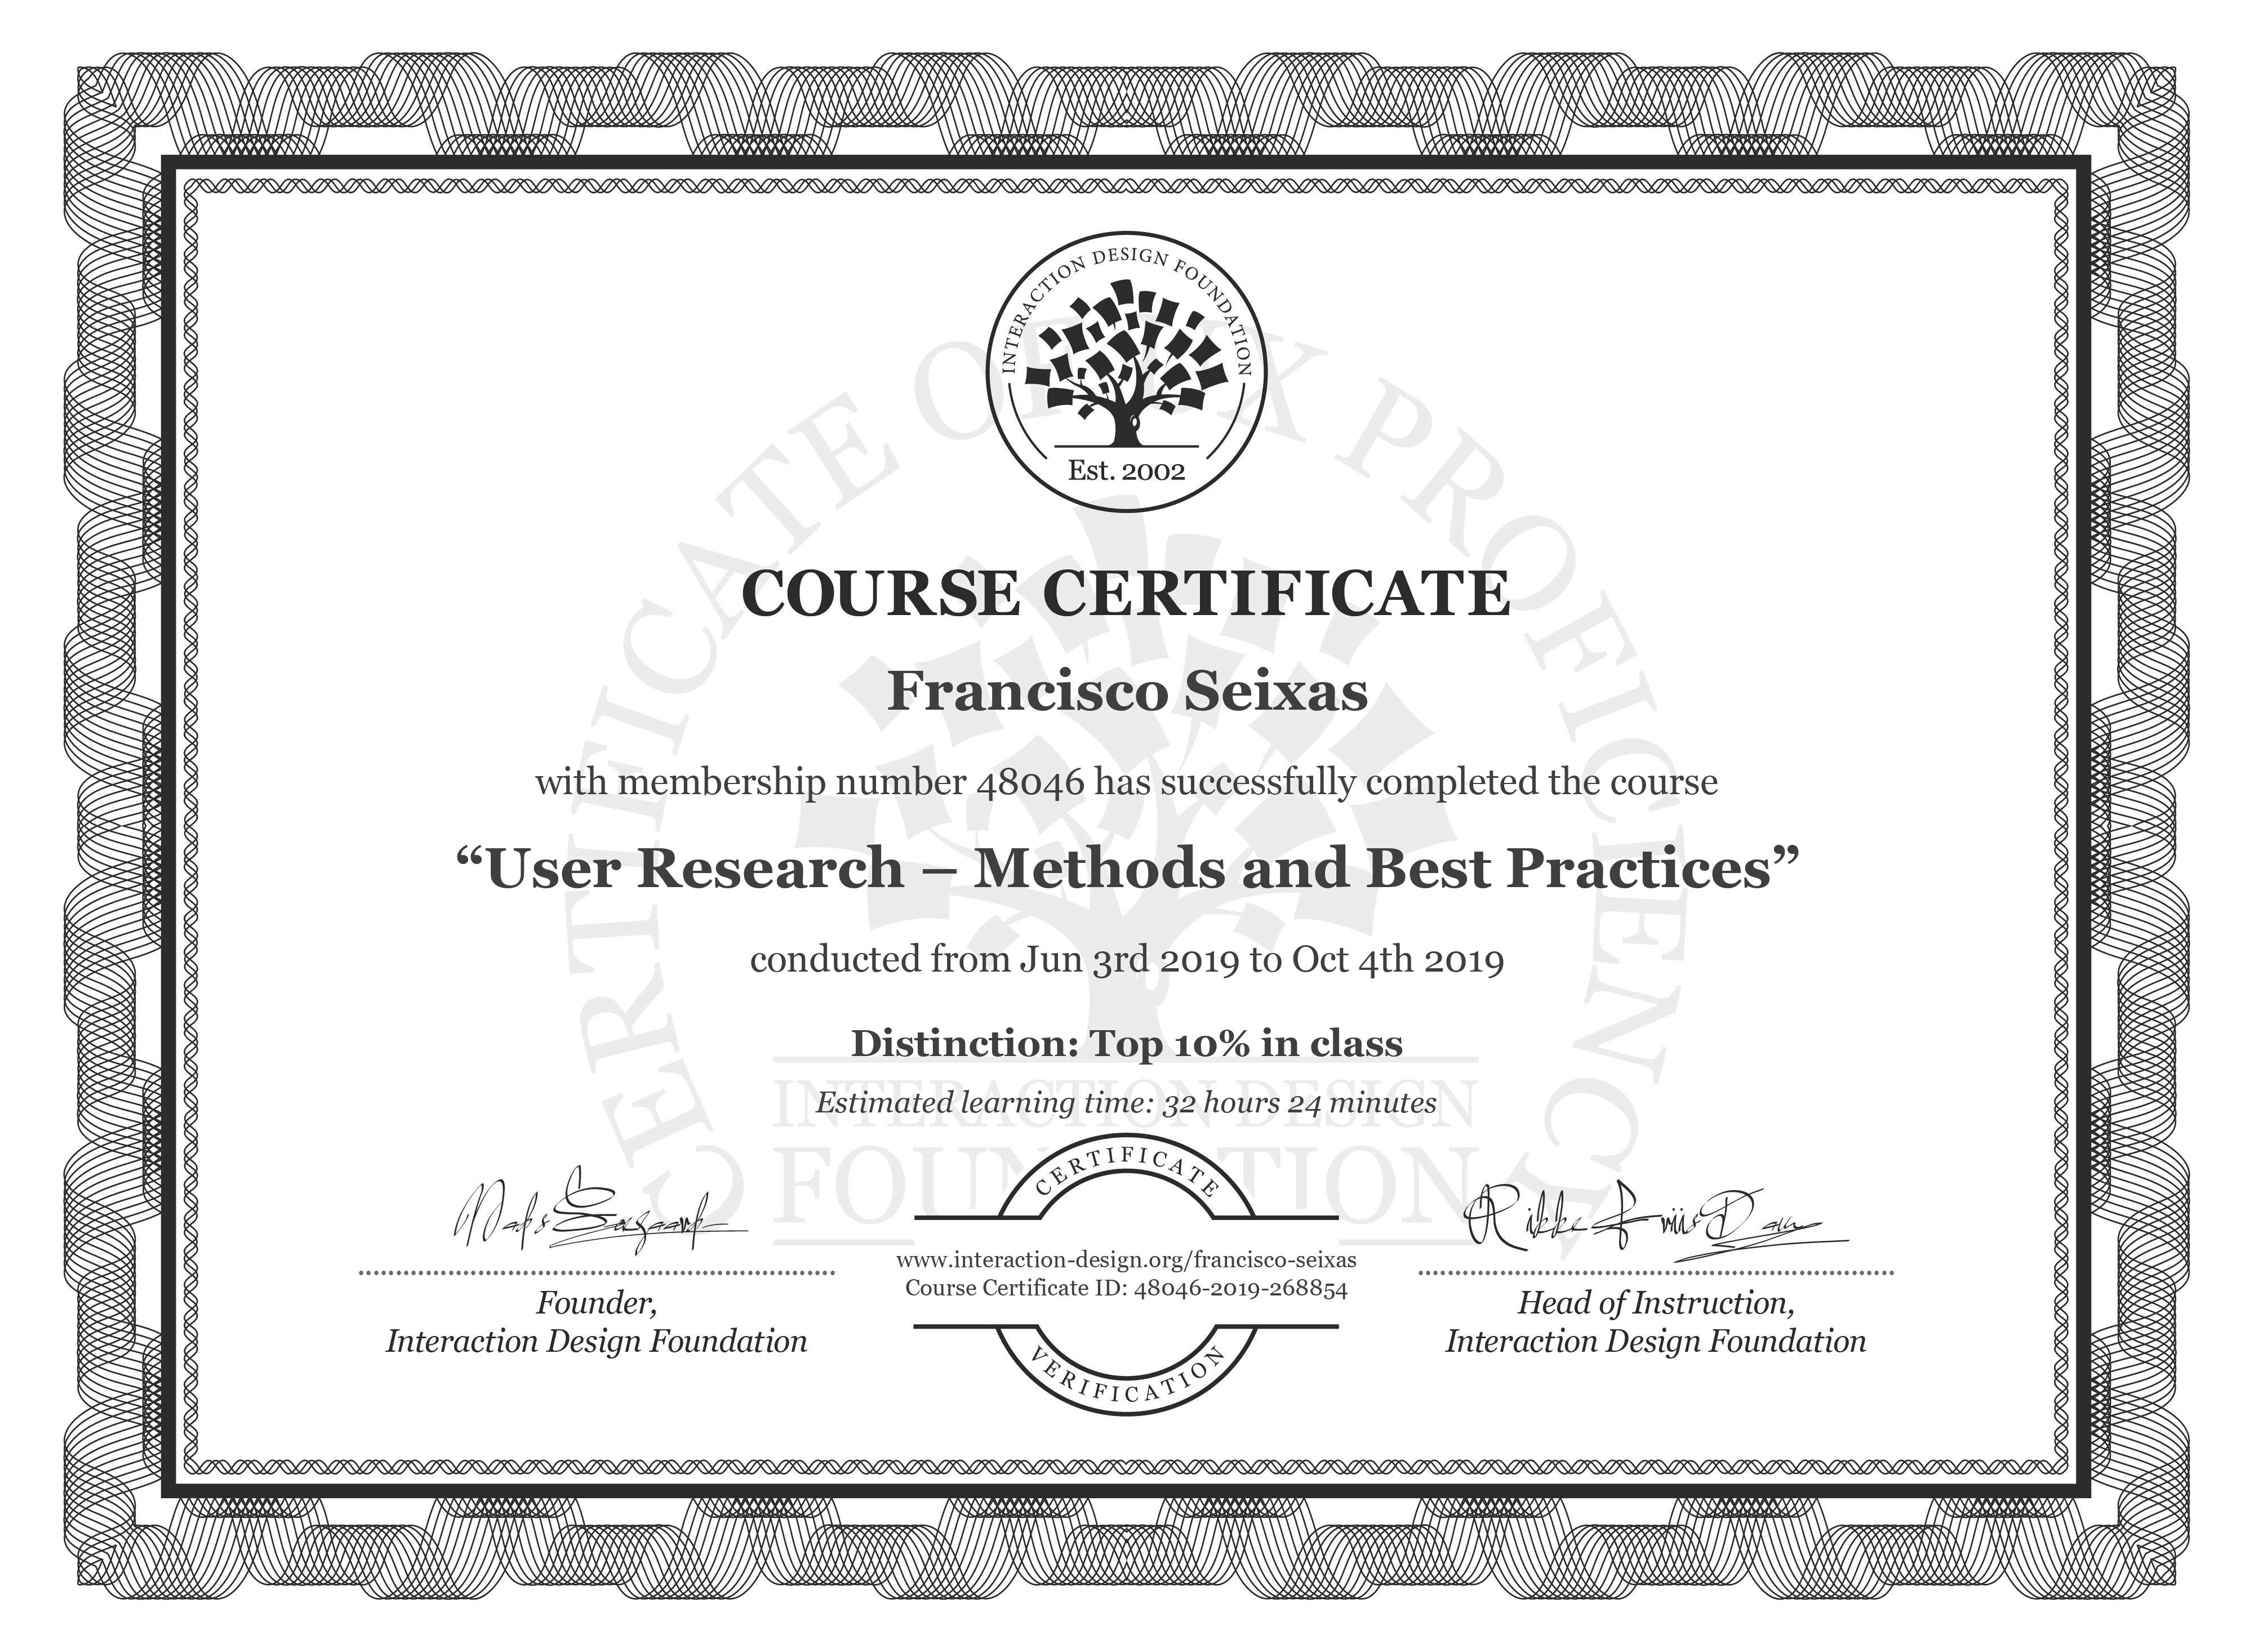 Francisco Seixas: Course Certificate - User Research – Methods and Best Practices